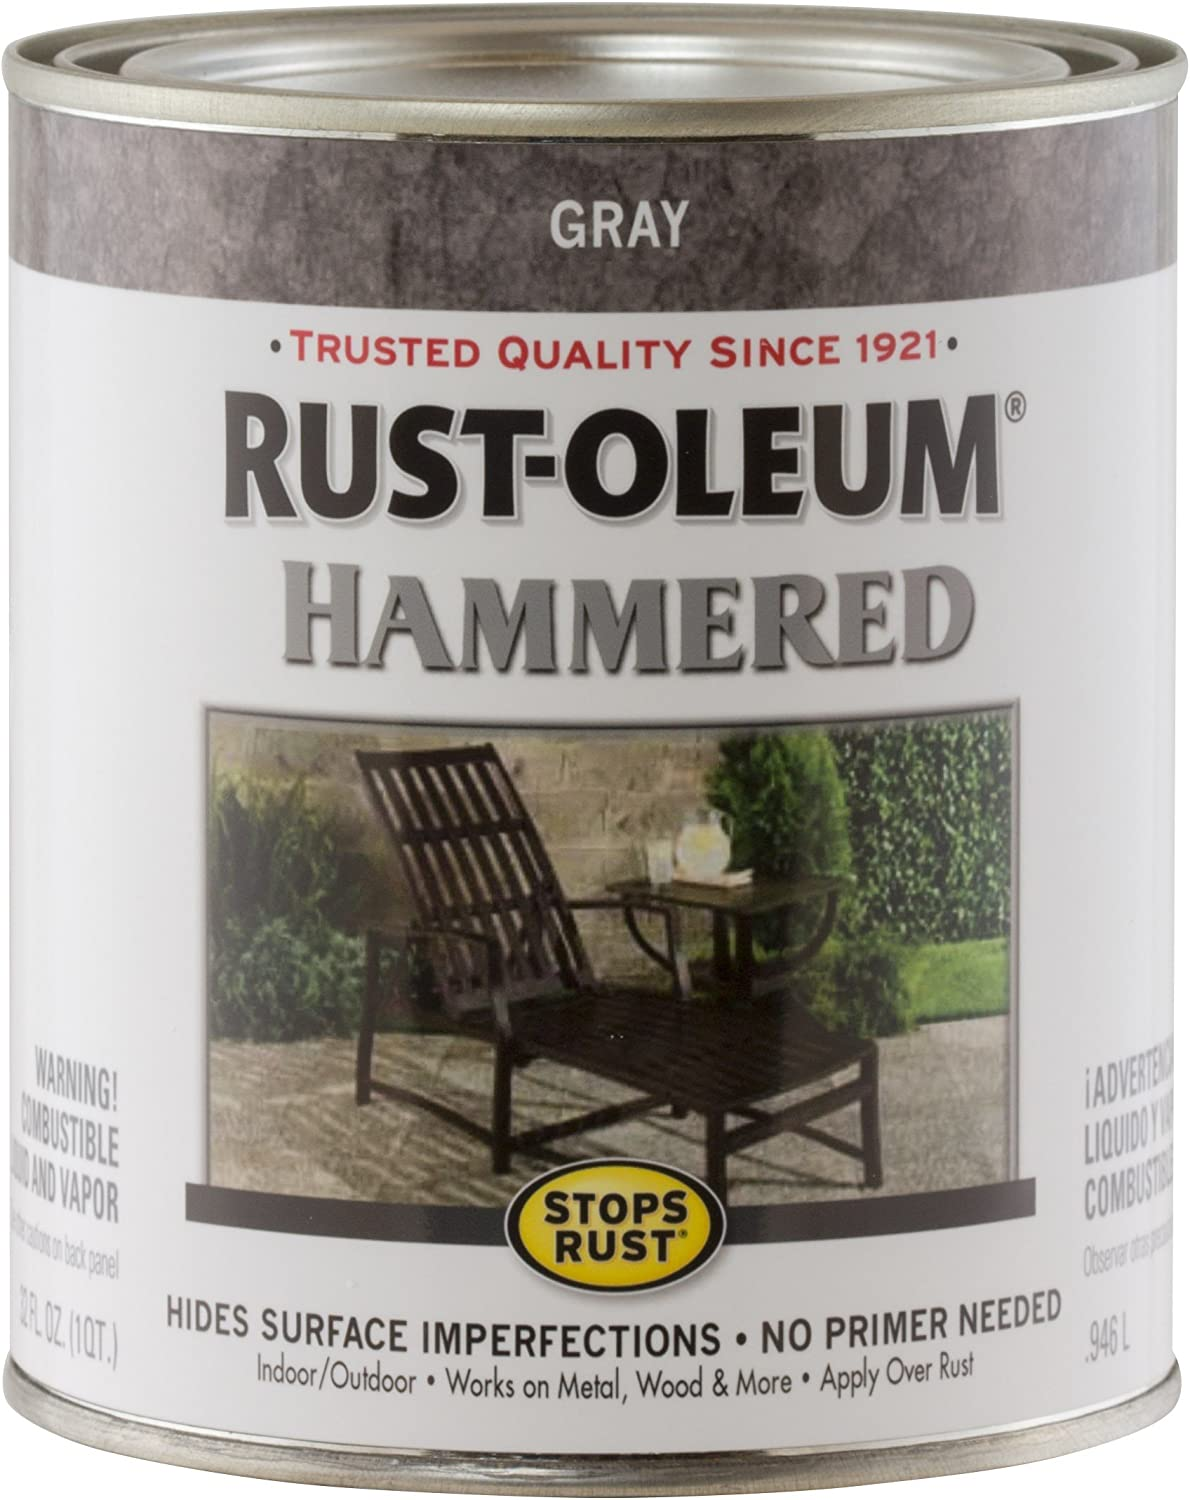 Rust-Oleum 7214502 Hammered Metal Finish, Gray, 1-Quart (Packaging may vary)